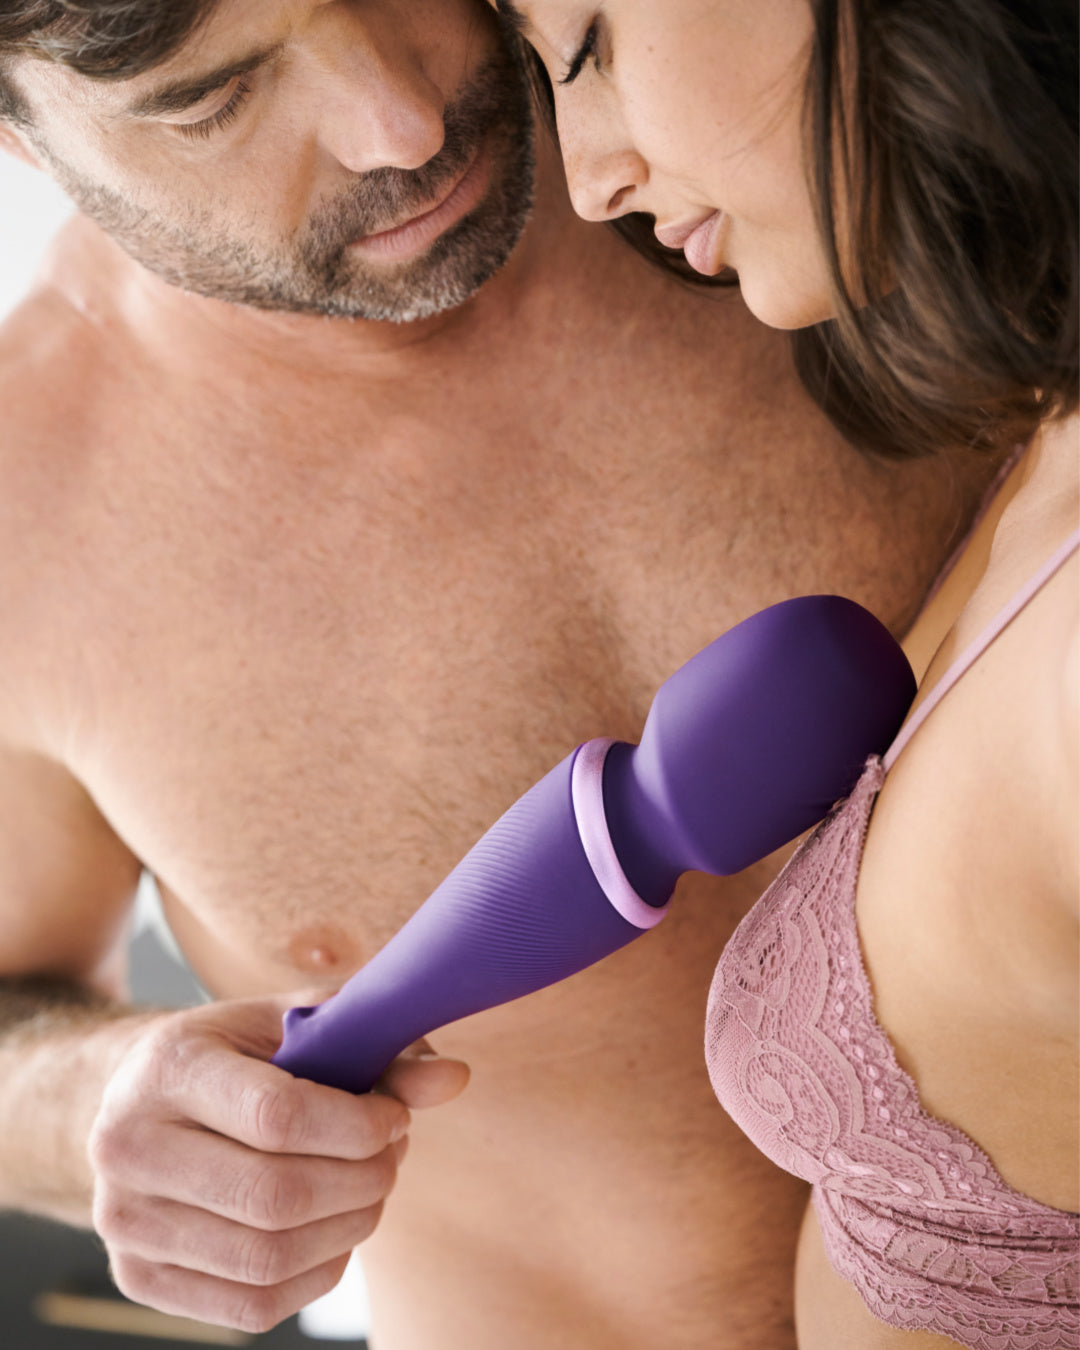 We-Vibe Wand Cordless Waterproof Rechargeable Wand Vibrator being used by a couple